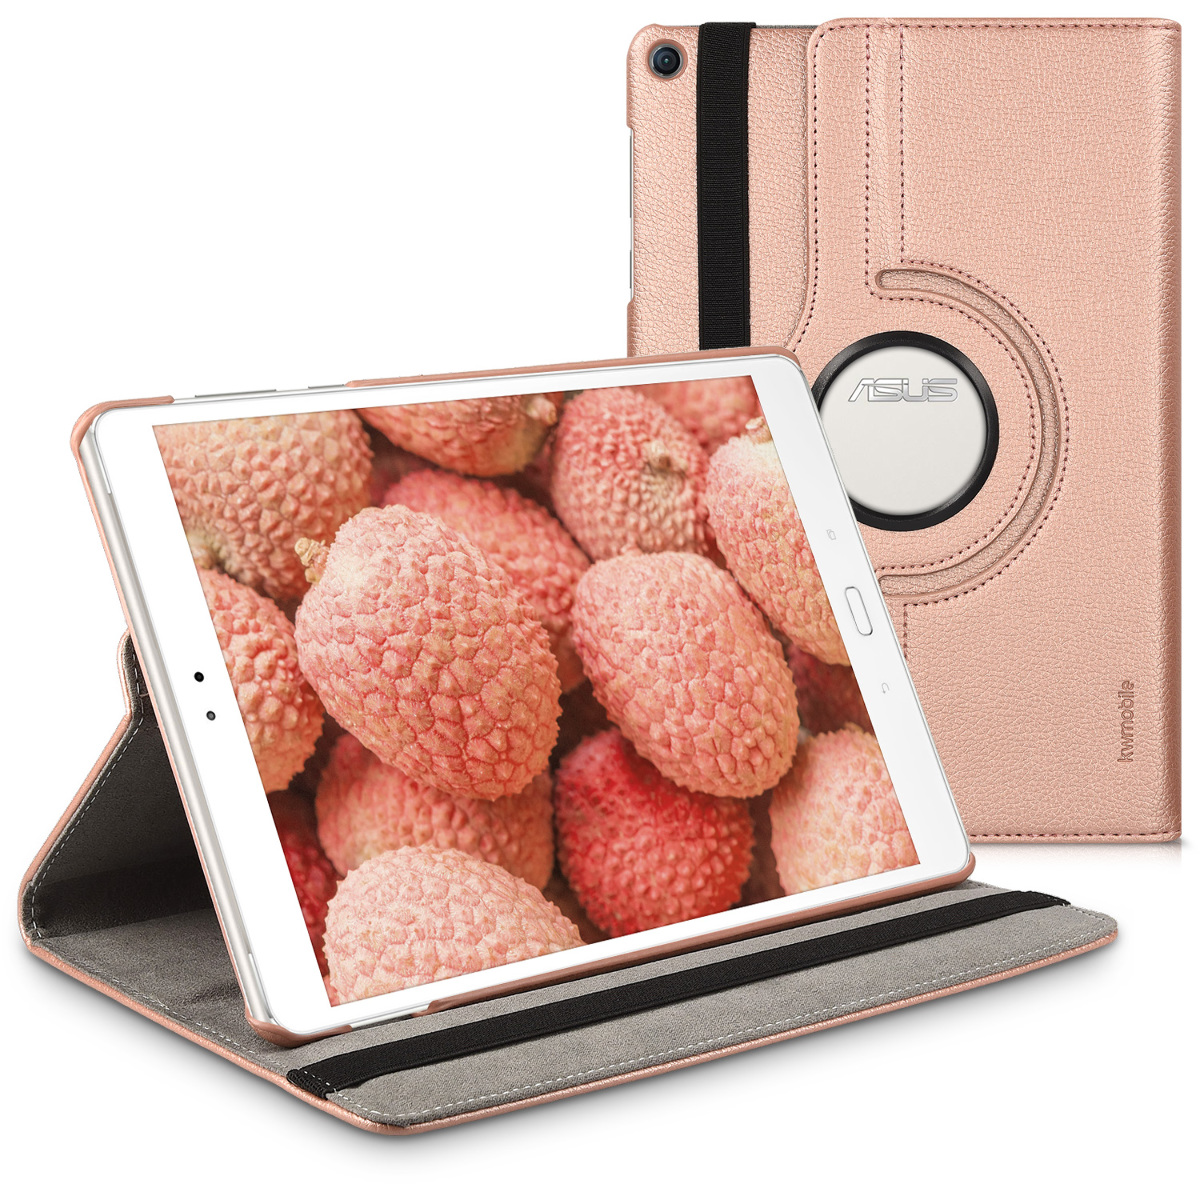 KW Θήκη 360° Asus ZenPad 3S 10 - PU Leather Protective Tablet Cover with Stand Function - Rose Gold (40148.81)